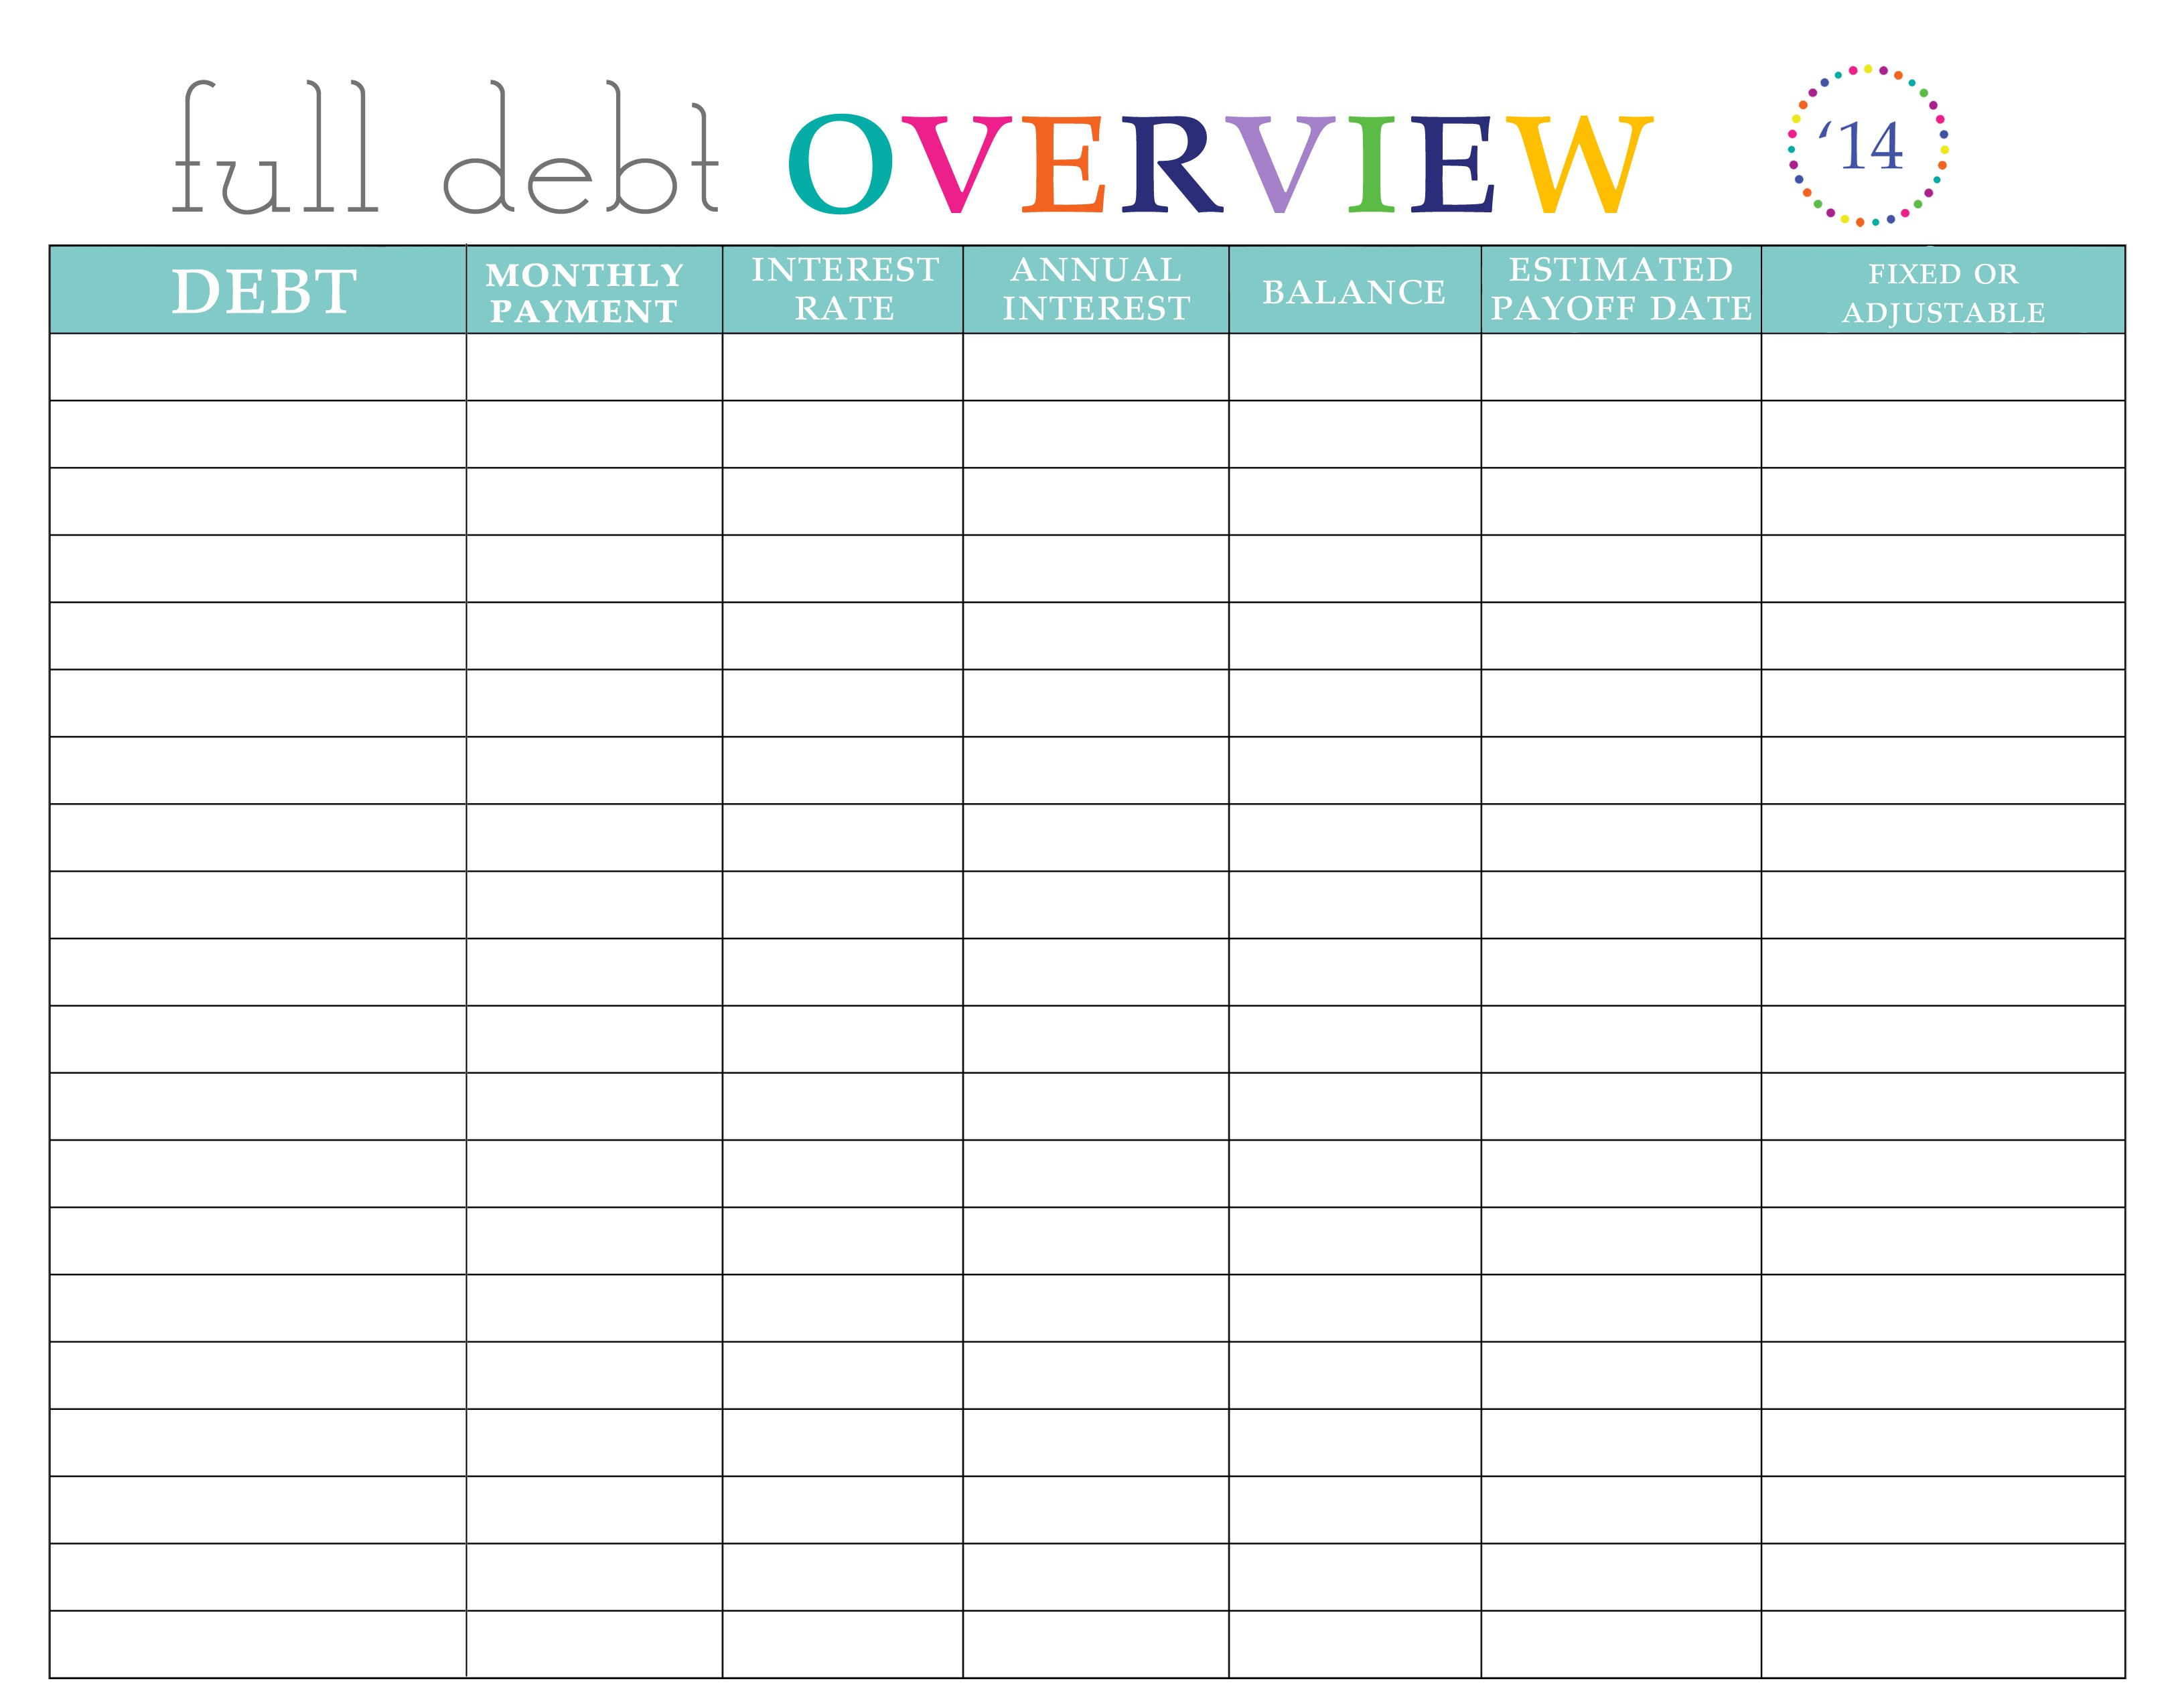 Student Loan Repayment Spreadsheet For Student Loan Repayment Excel Template Best Of Loan Calculator